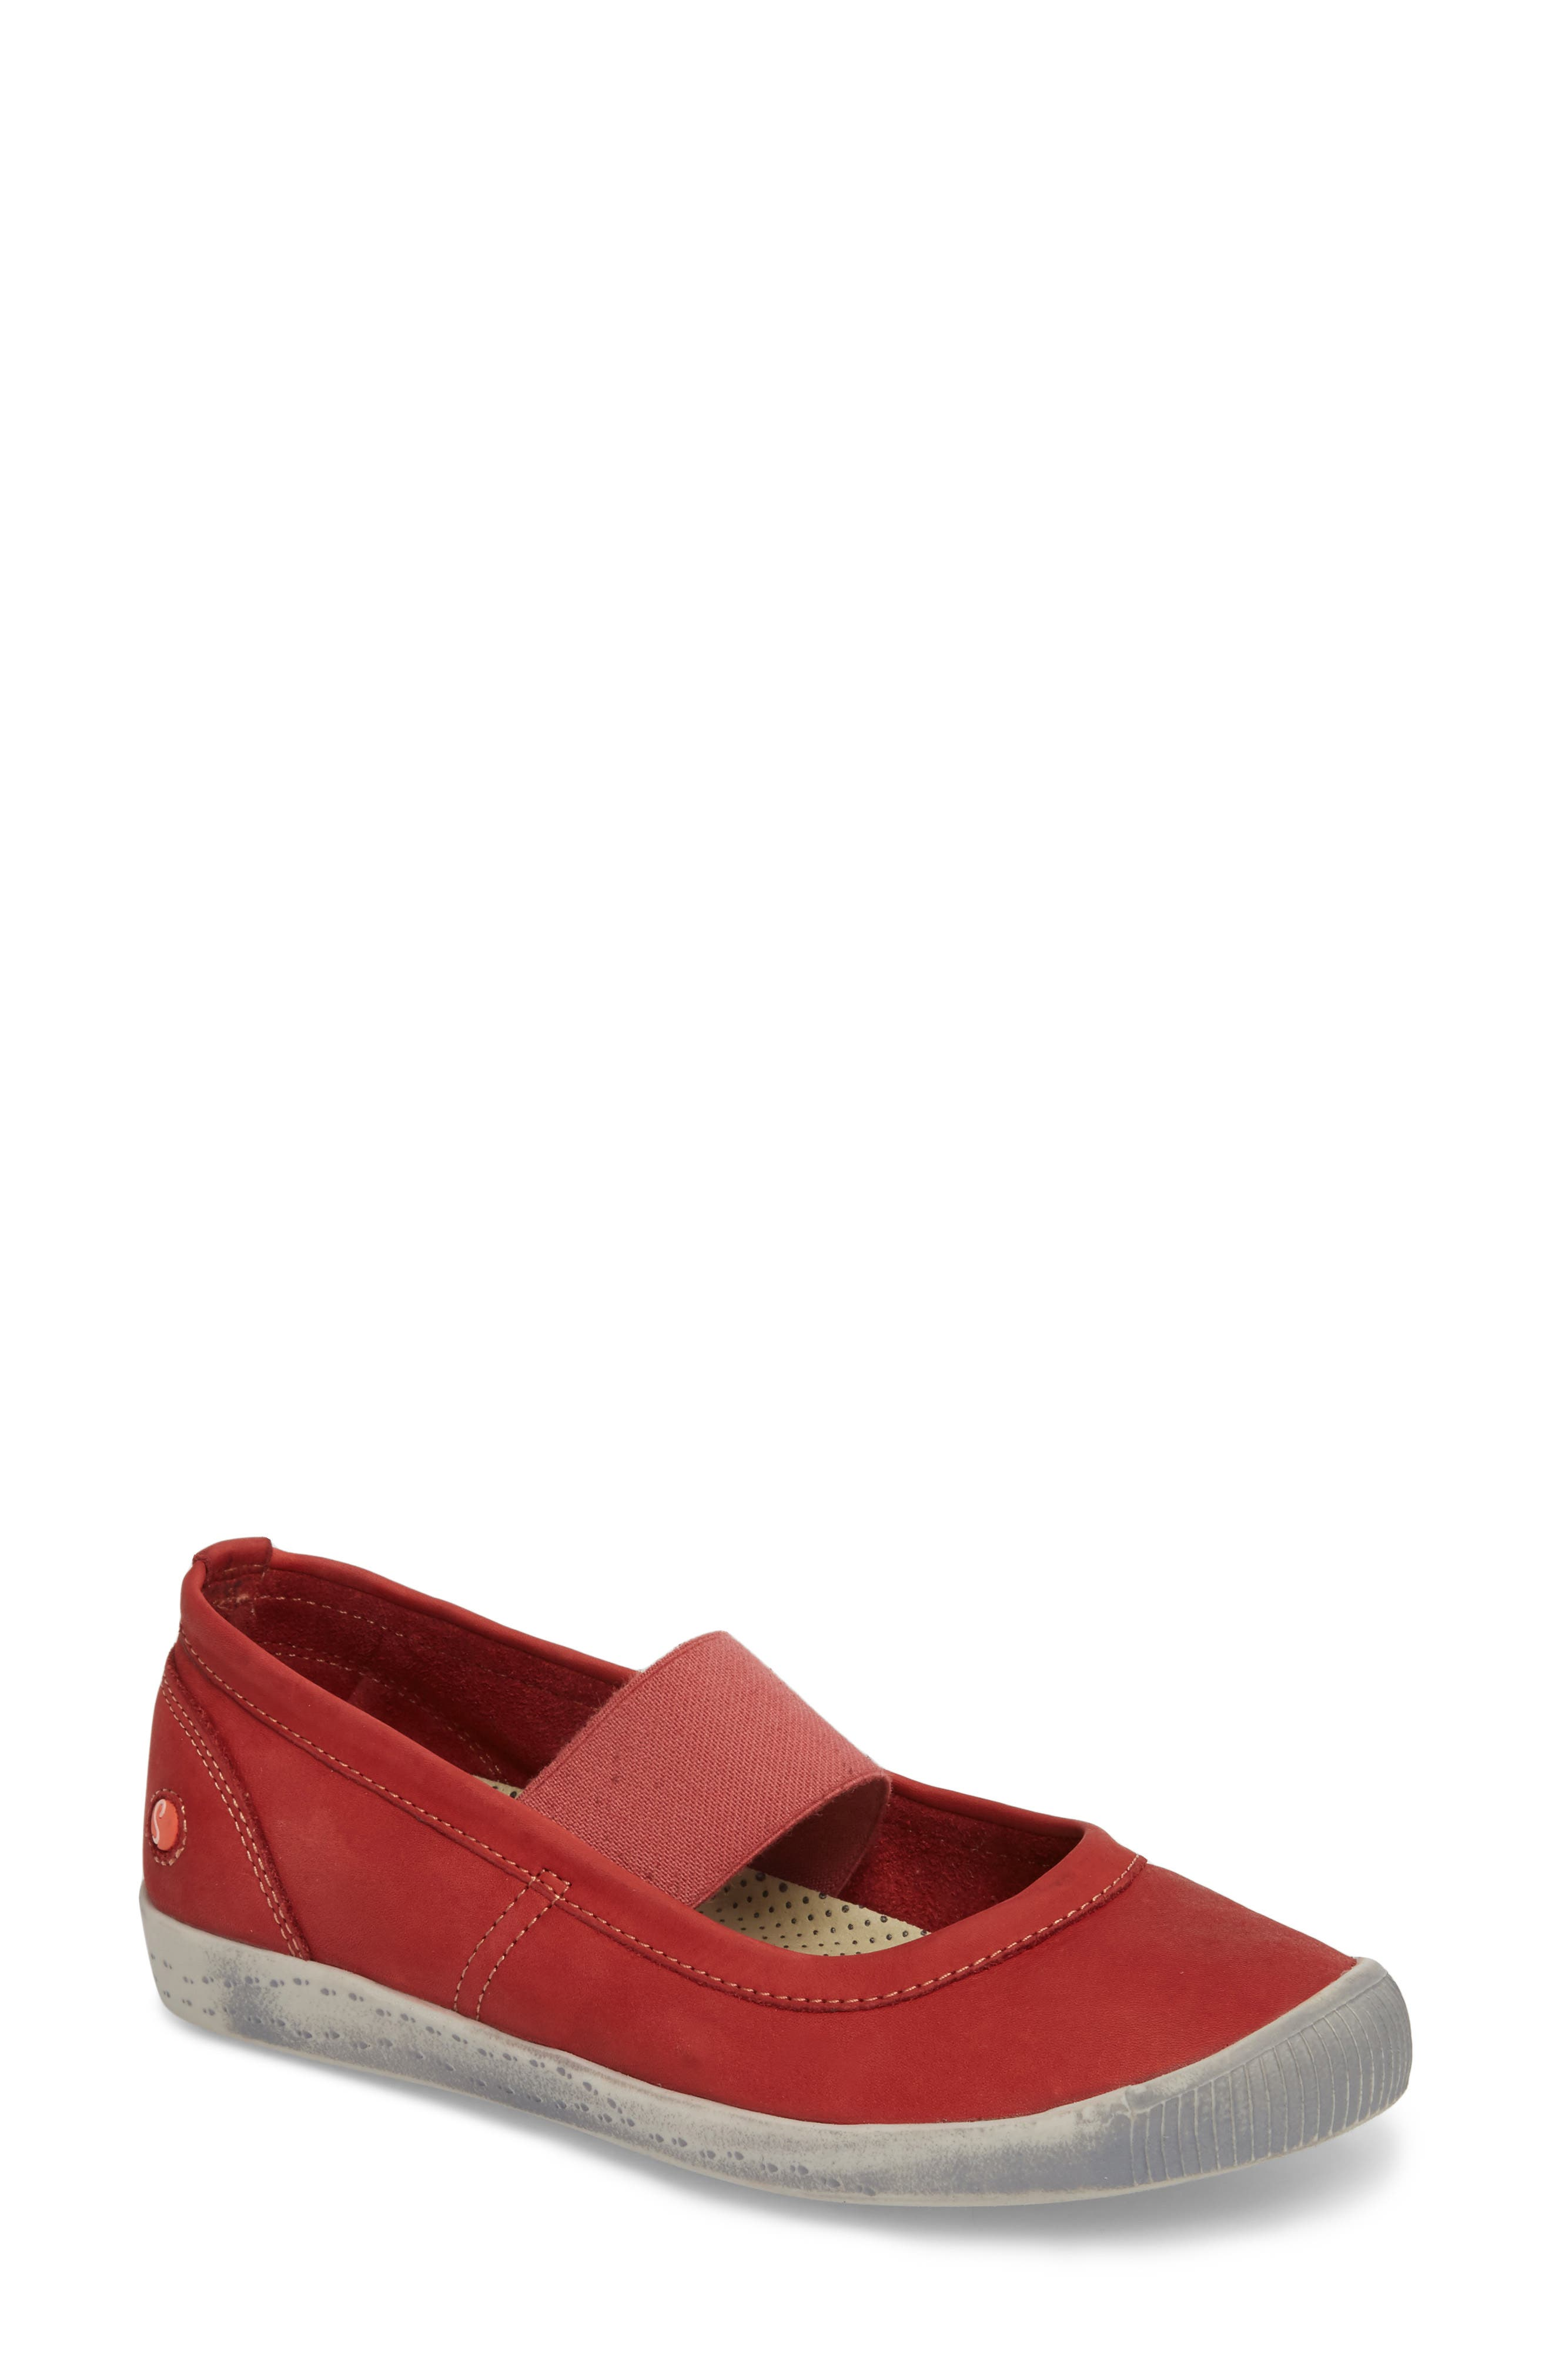 Ion Mary Jane Sneaker,                             Main thumbnail 1, color,                             Red Leather